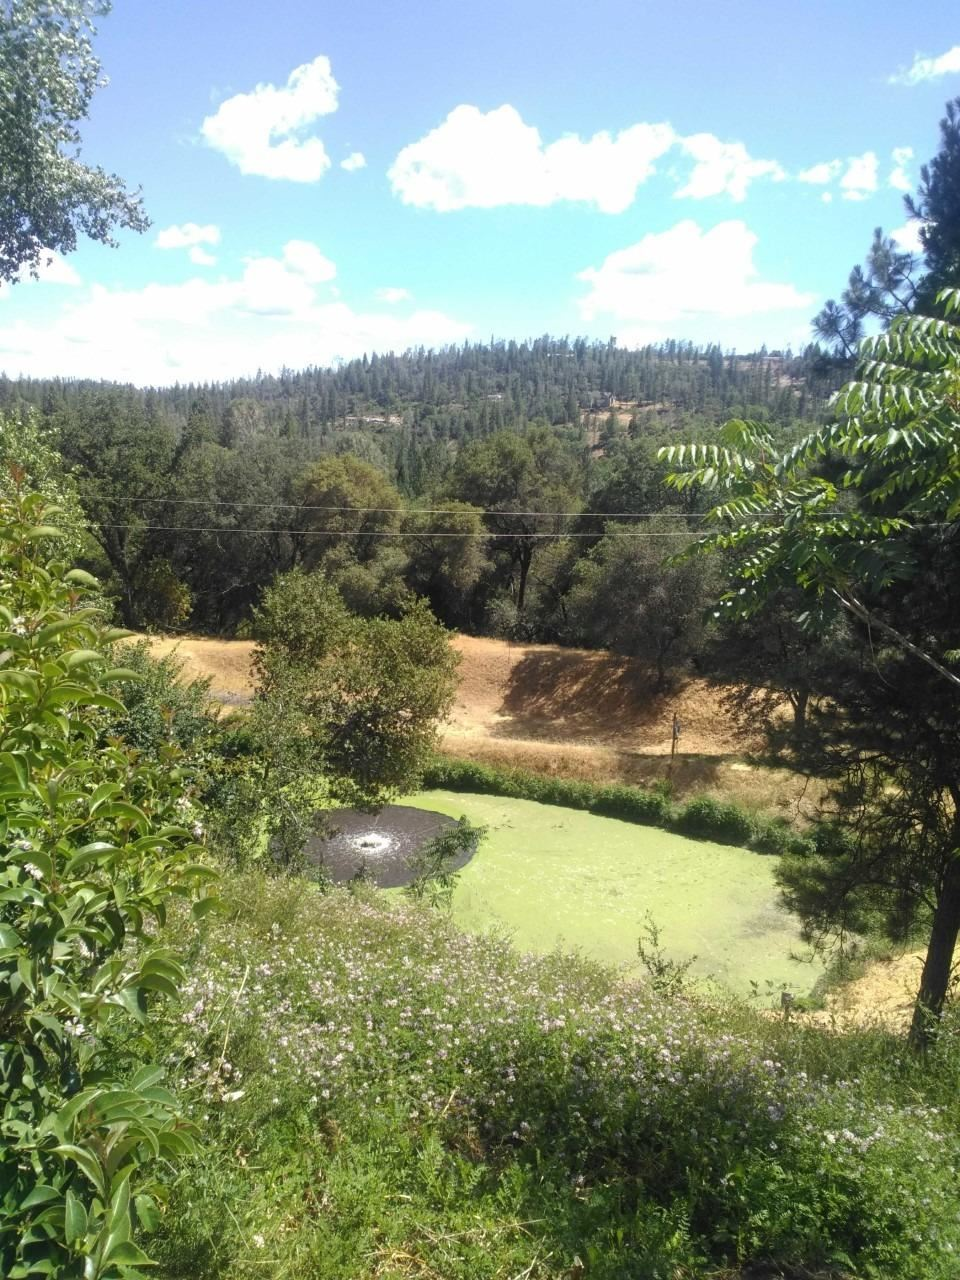 14533 Rough & Ready Highway #D, Rough and Ready, CA 95975 - MLS#: 221056801